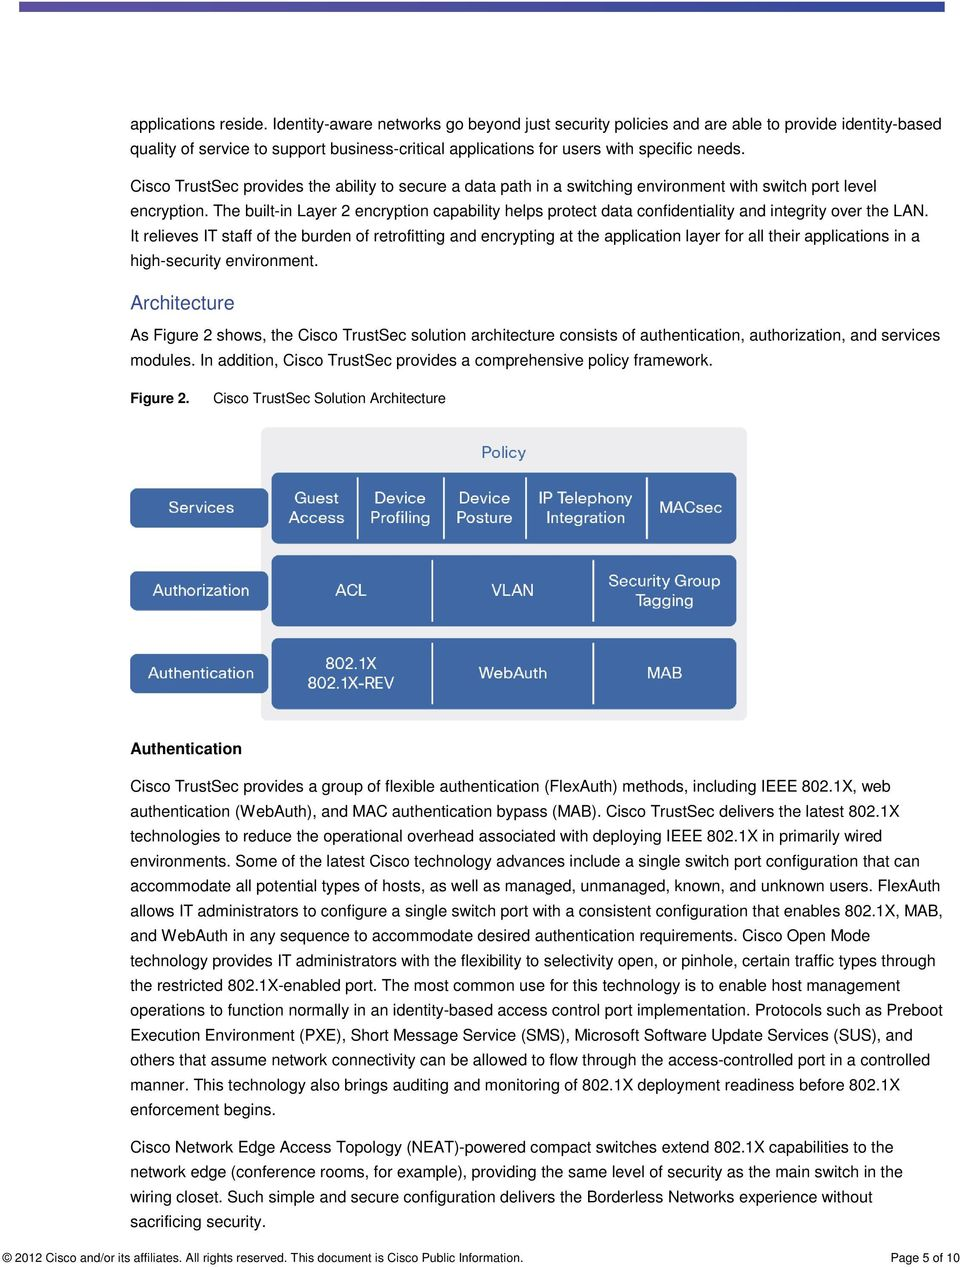 Cisco TrustSec provides the ability to secure a data path in a switching environment with switch port level encryption.